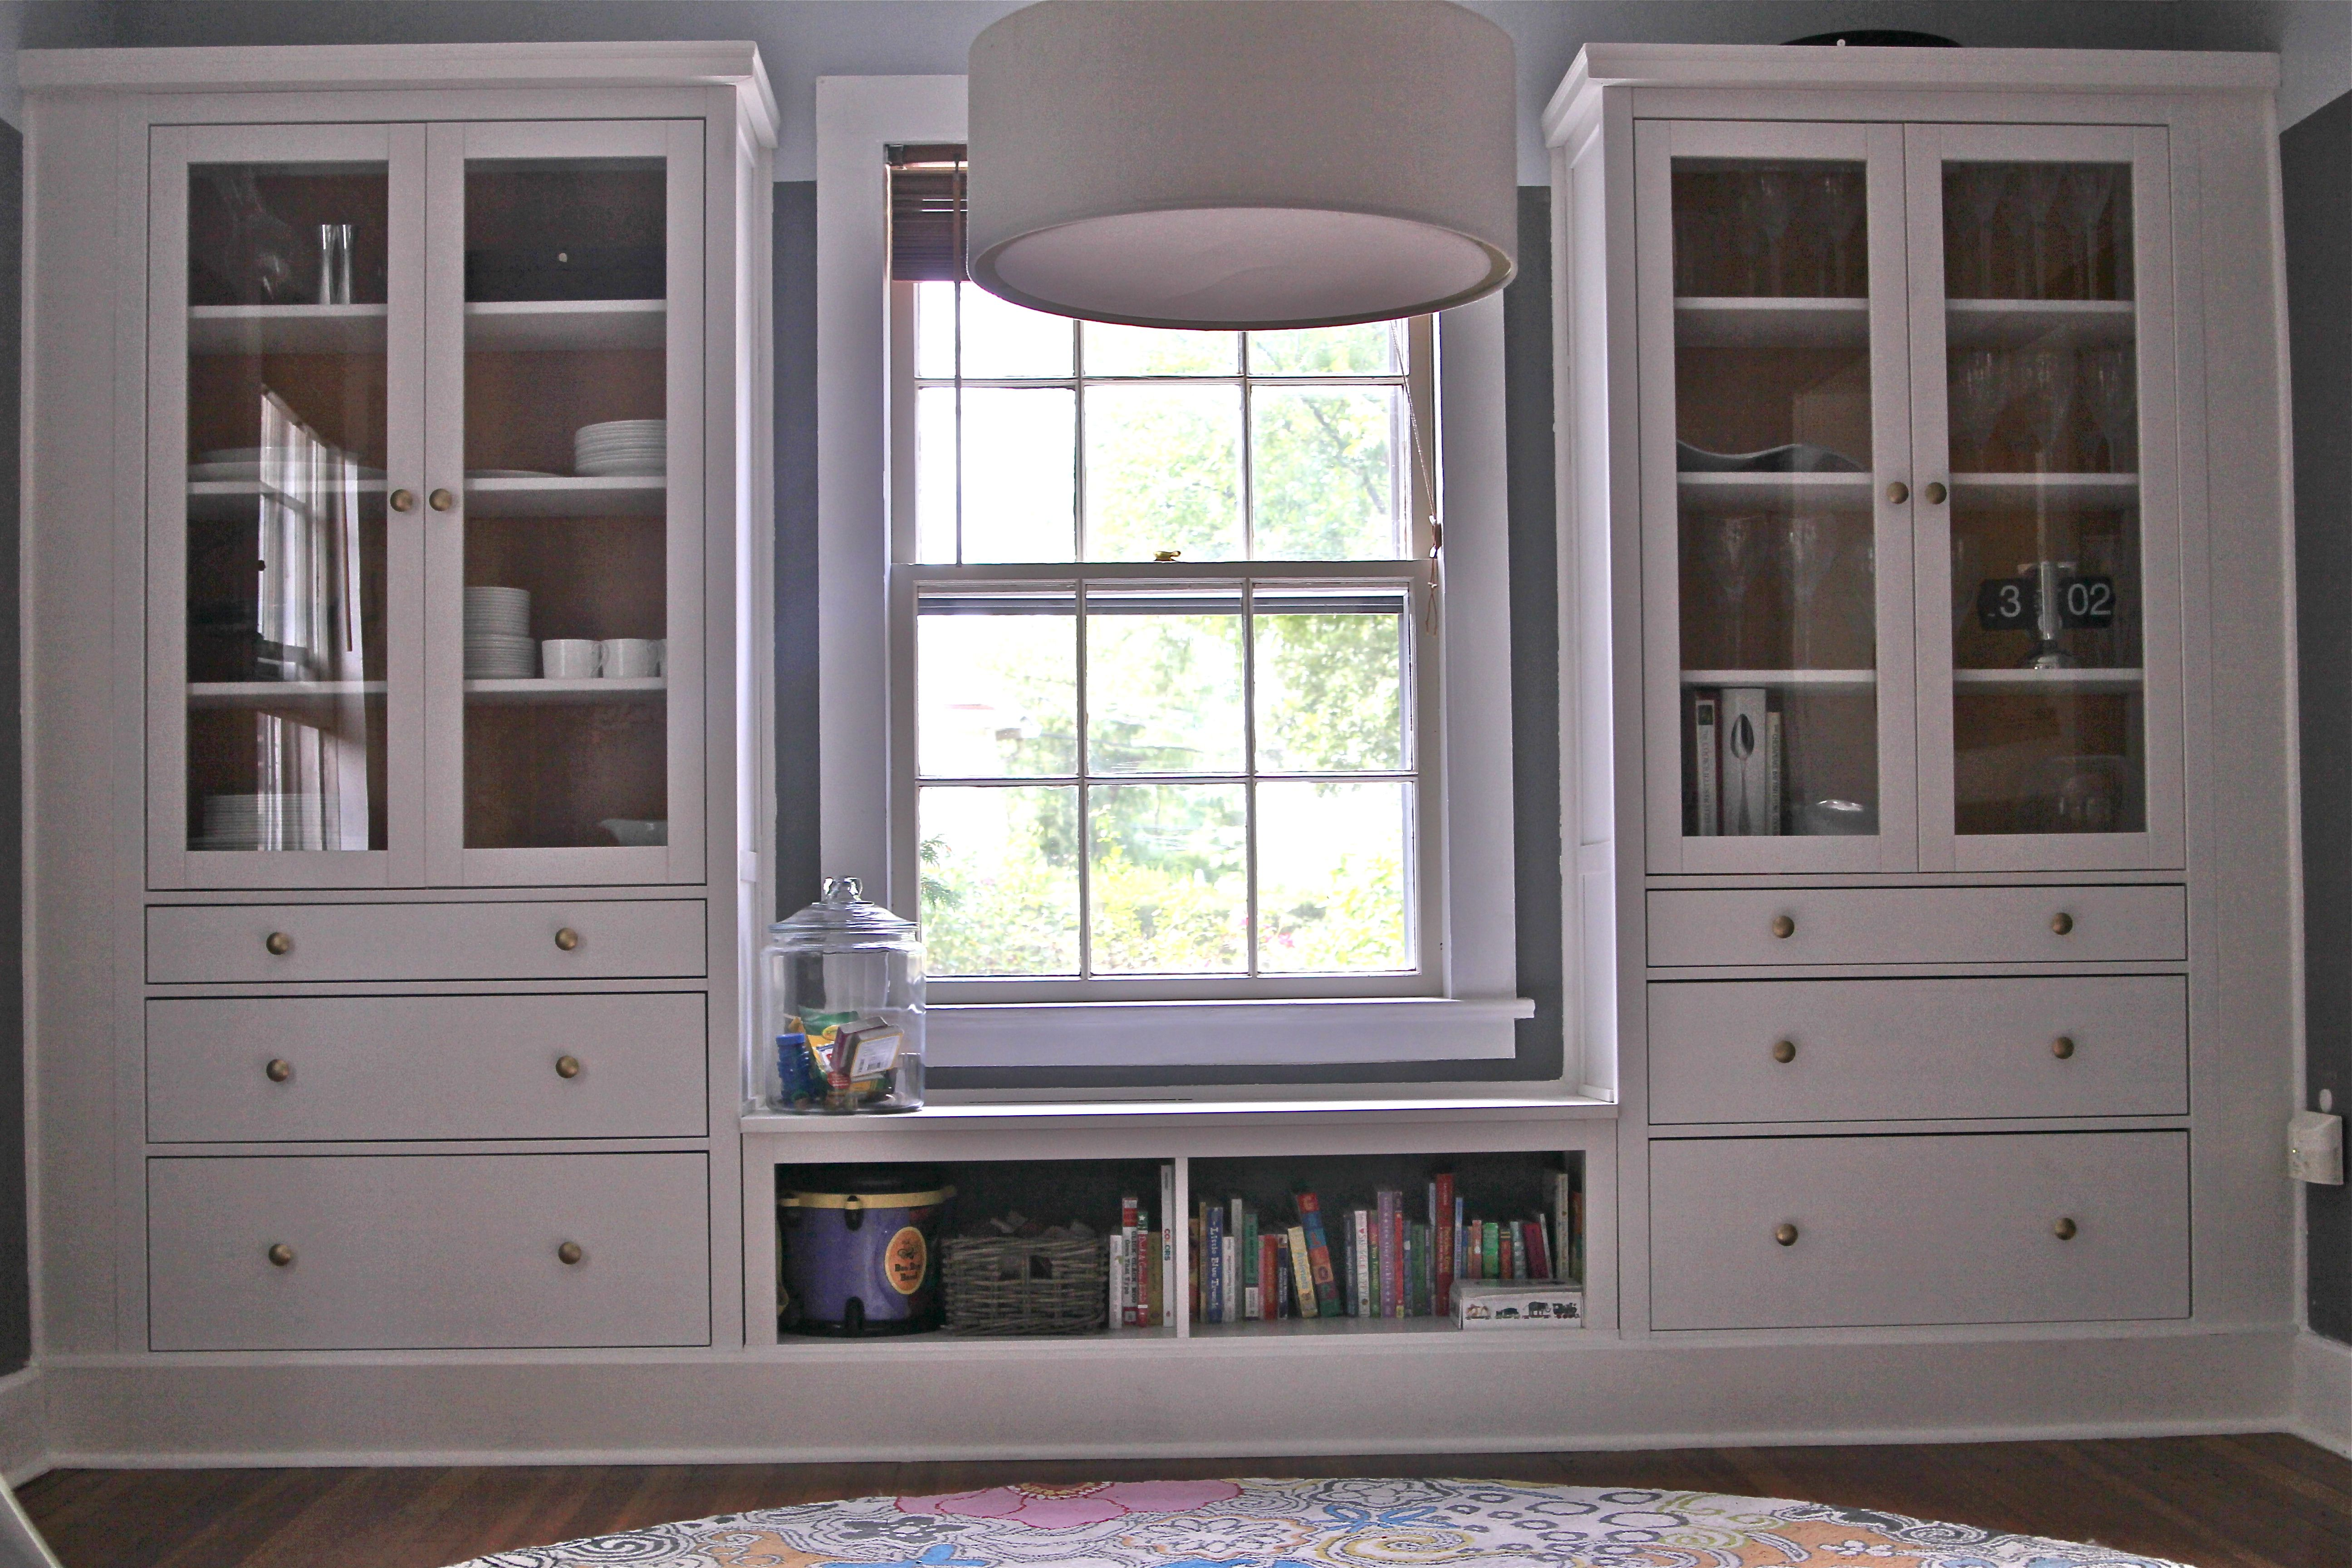 Charmant Ikea Hemnes Hack   Dining Room Built Ins Using Hemnes Cabinets And  Extension Piece As Window Seat / Bookshelf. Added Mouldings, Painted Back  Panel, ...